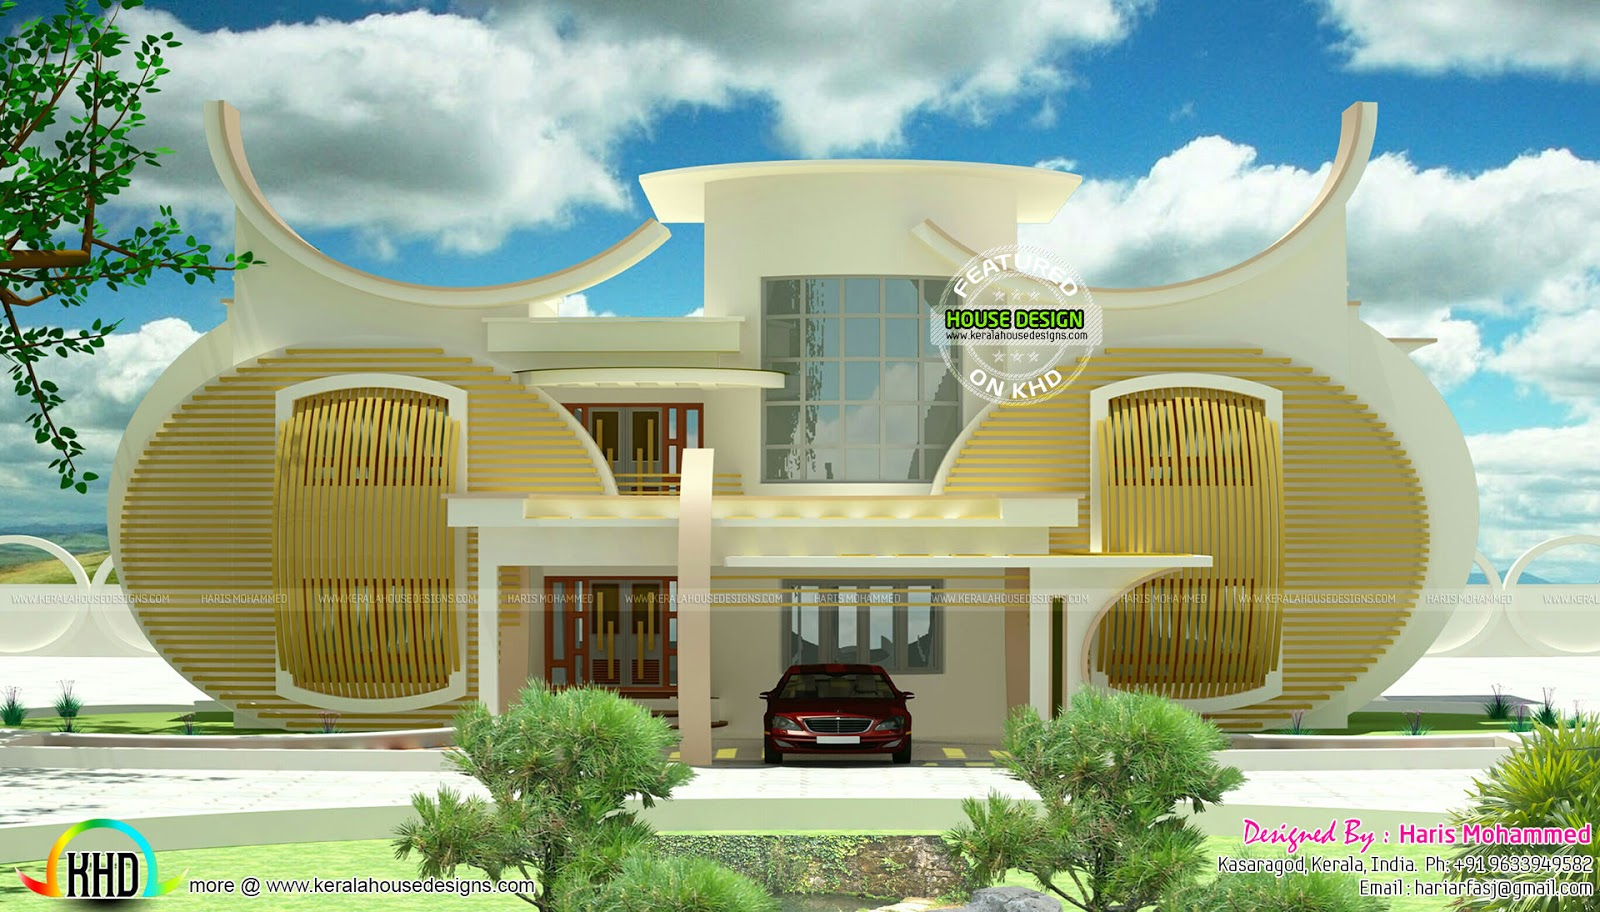 Strange circular home design kerala home design and for Www homedesign com